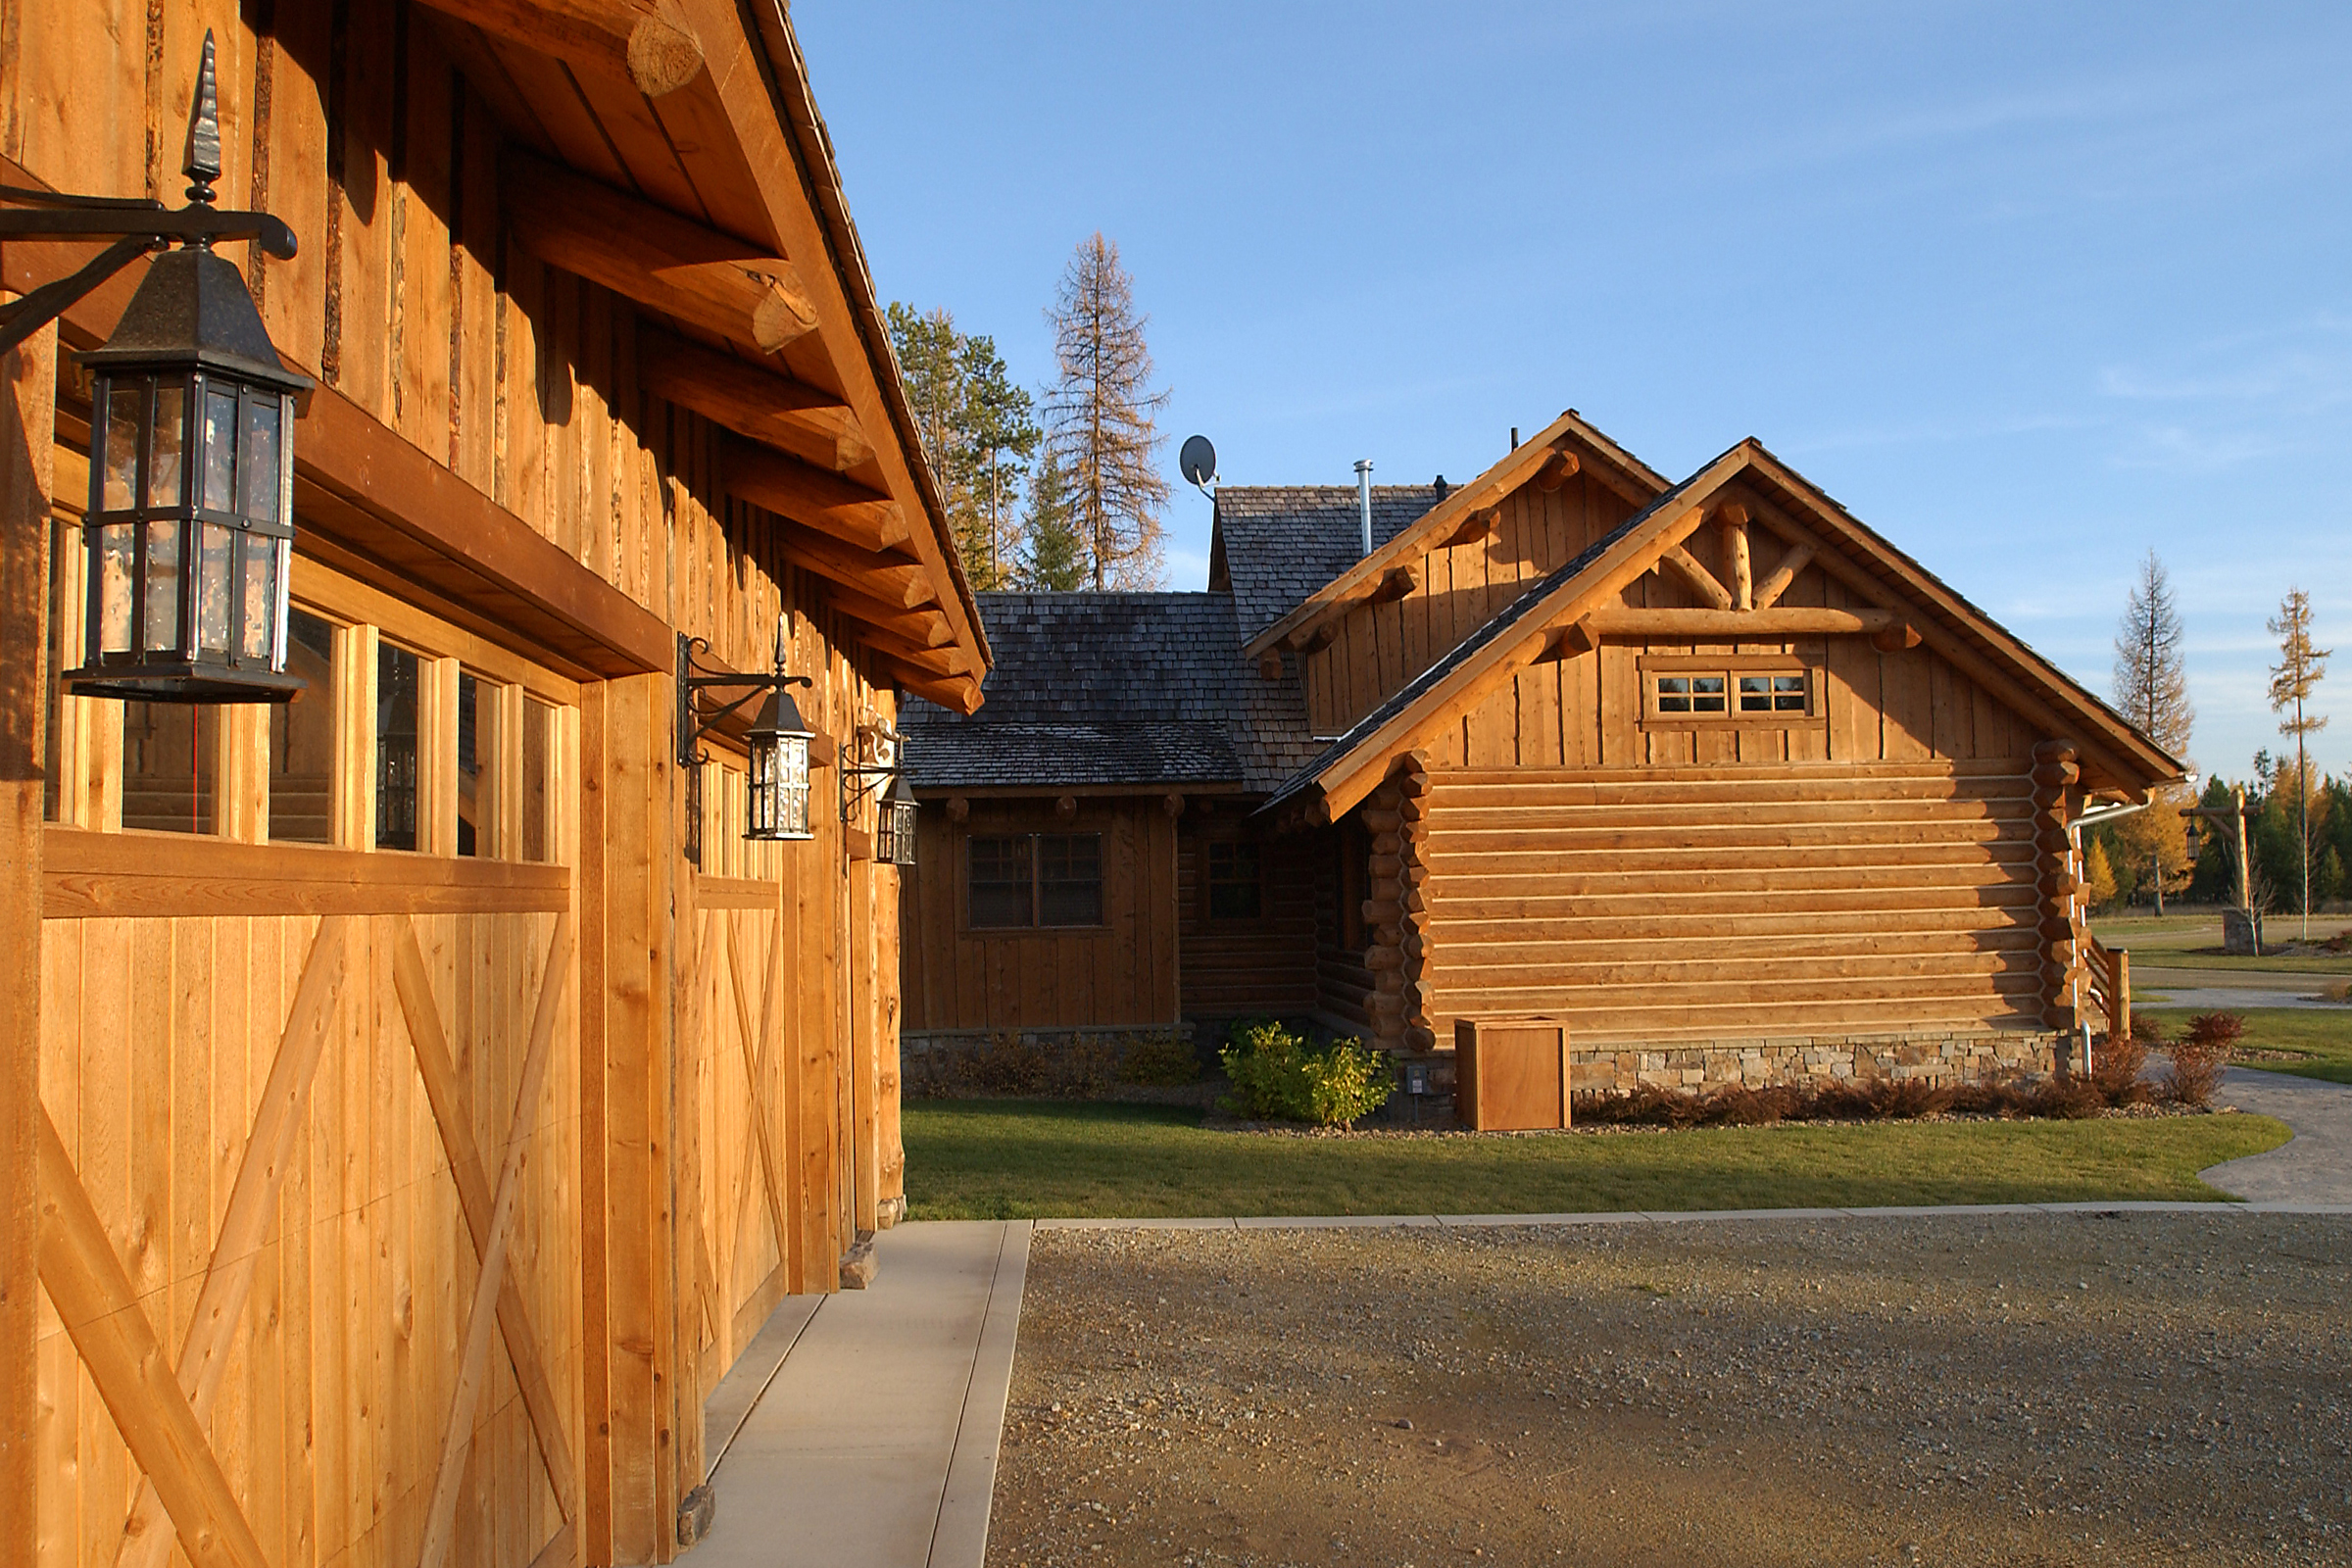 Coles cabin garage rocky mountain homes for Rocky mountain home builders